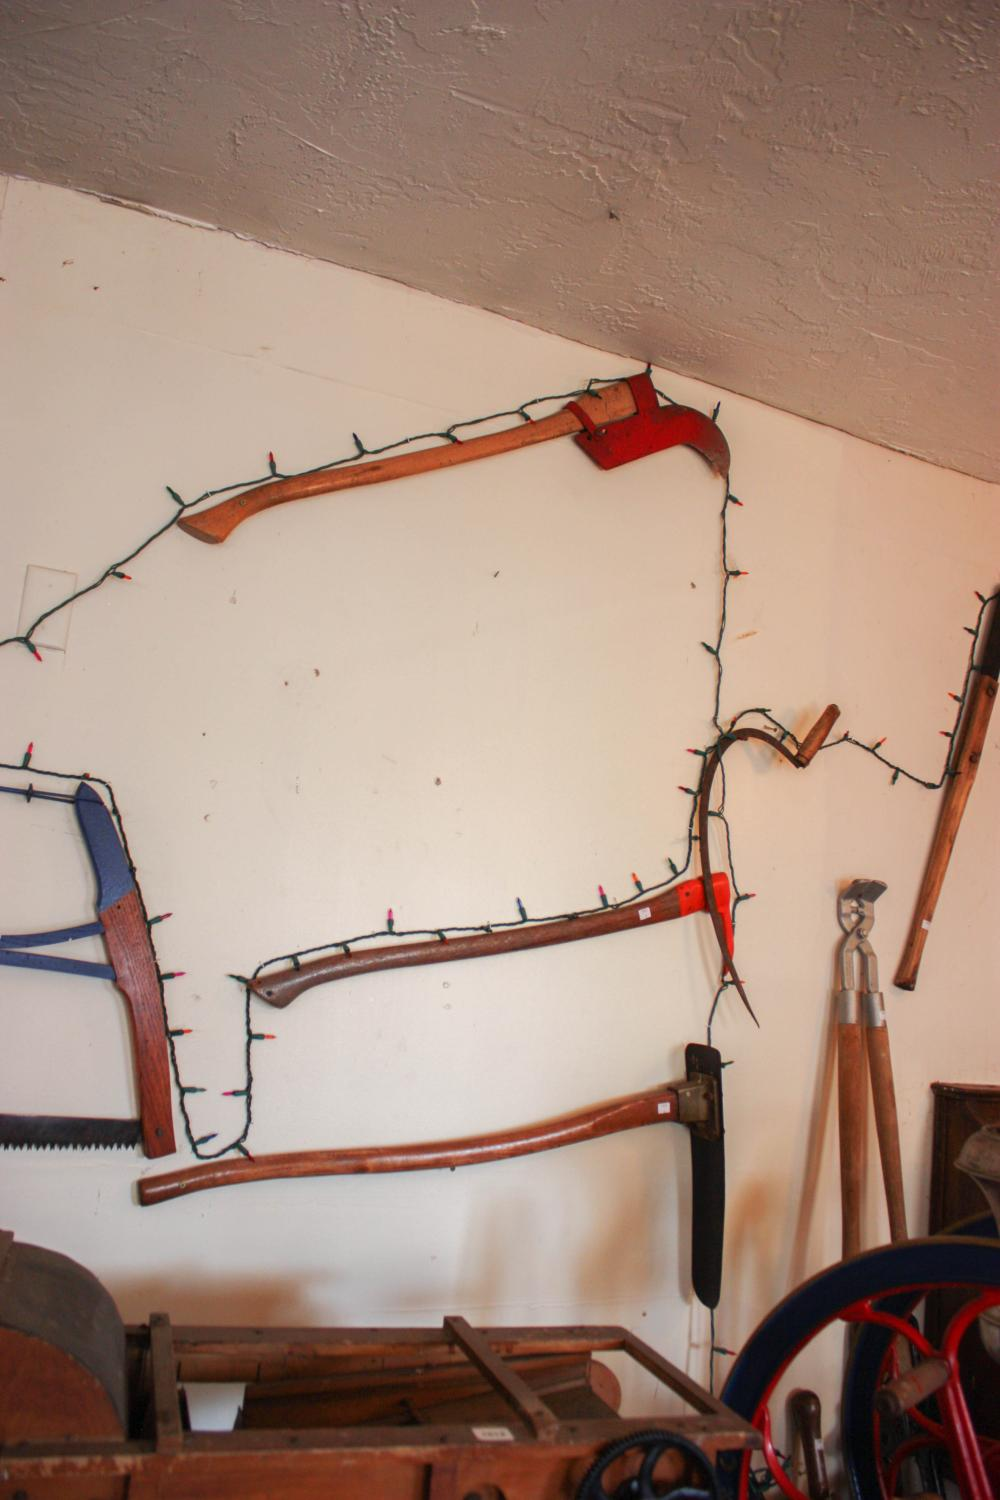 A WALL OF VINTAGE AND ANTIQUE HAND TOOLS